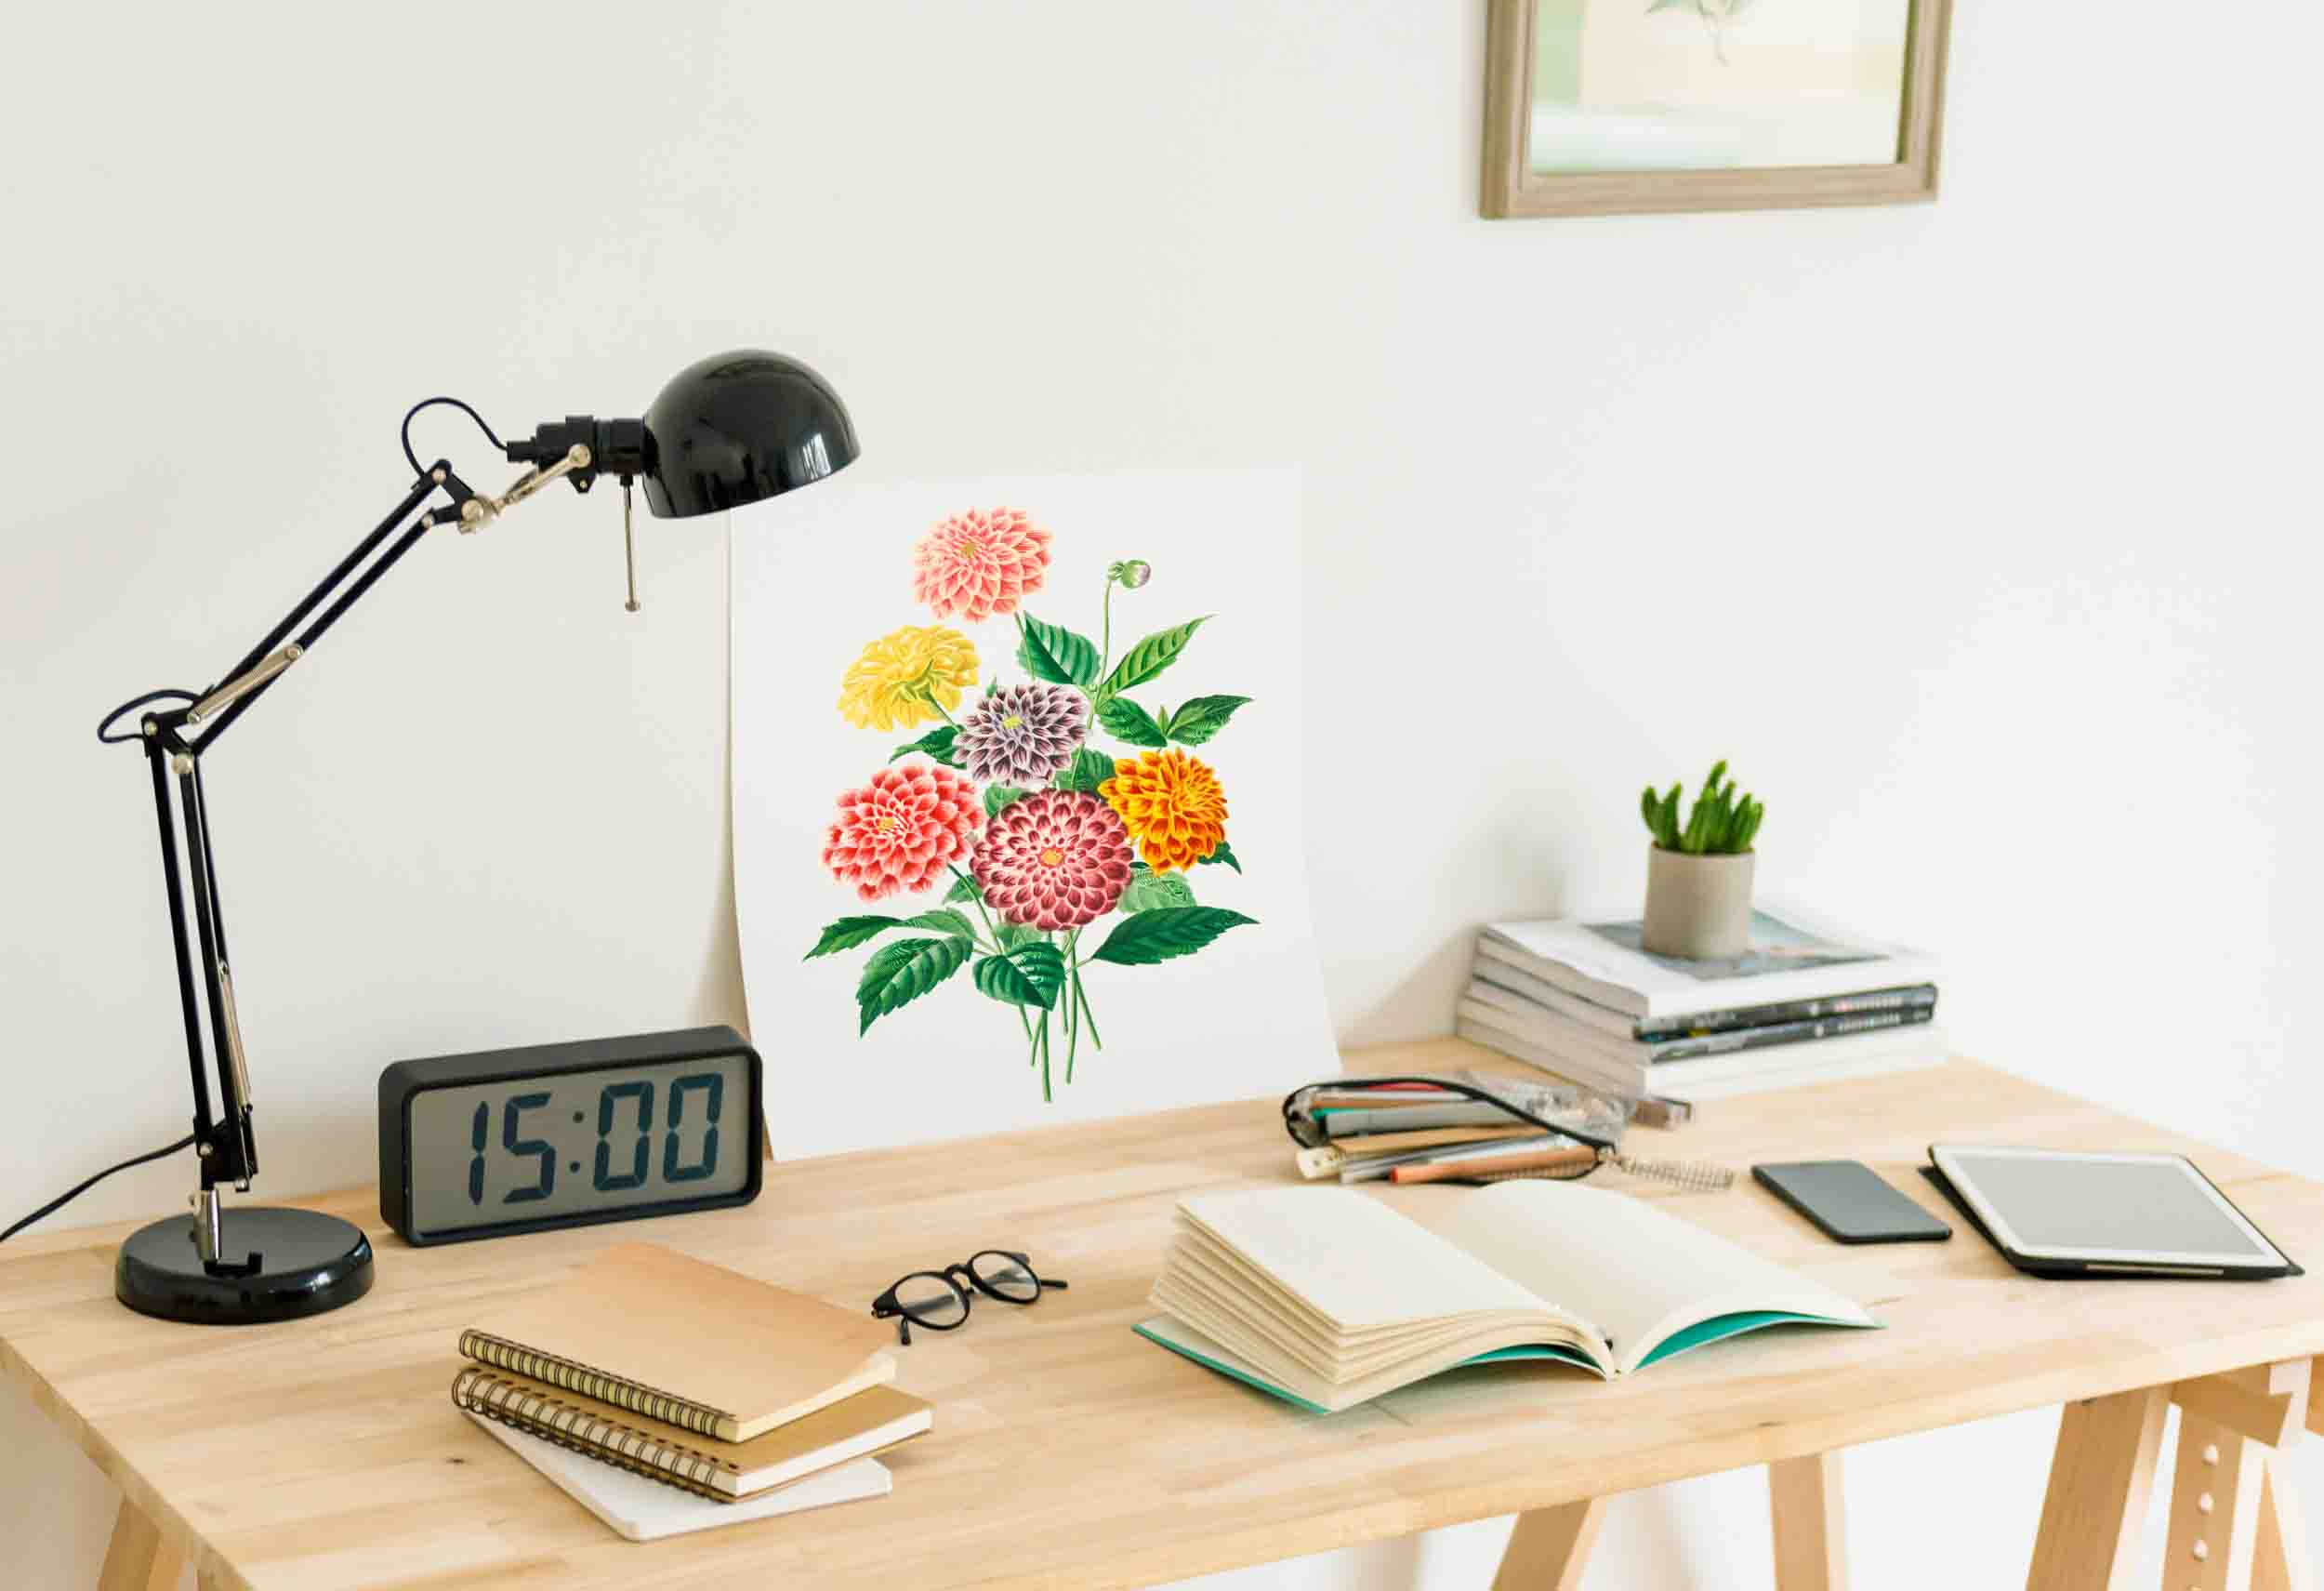 study desk with a lamp, digital clock, glasses, flower painting, and some notebooks